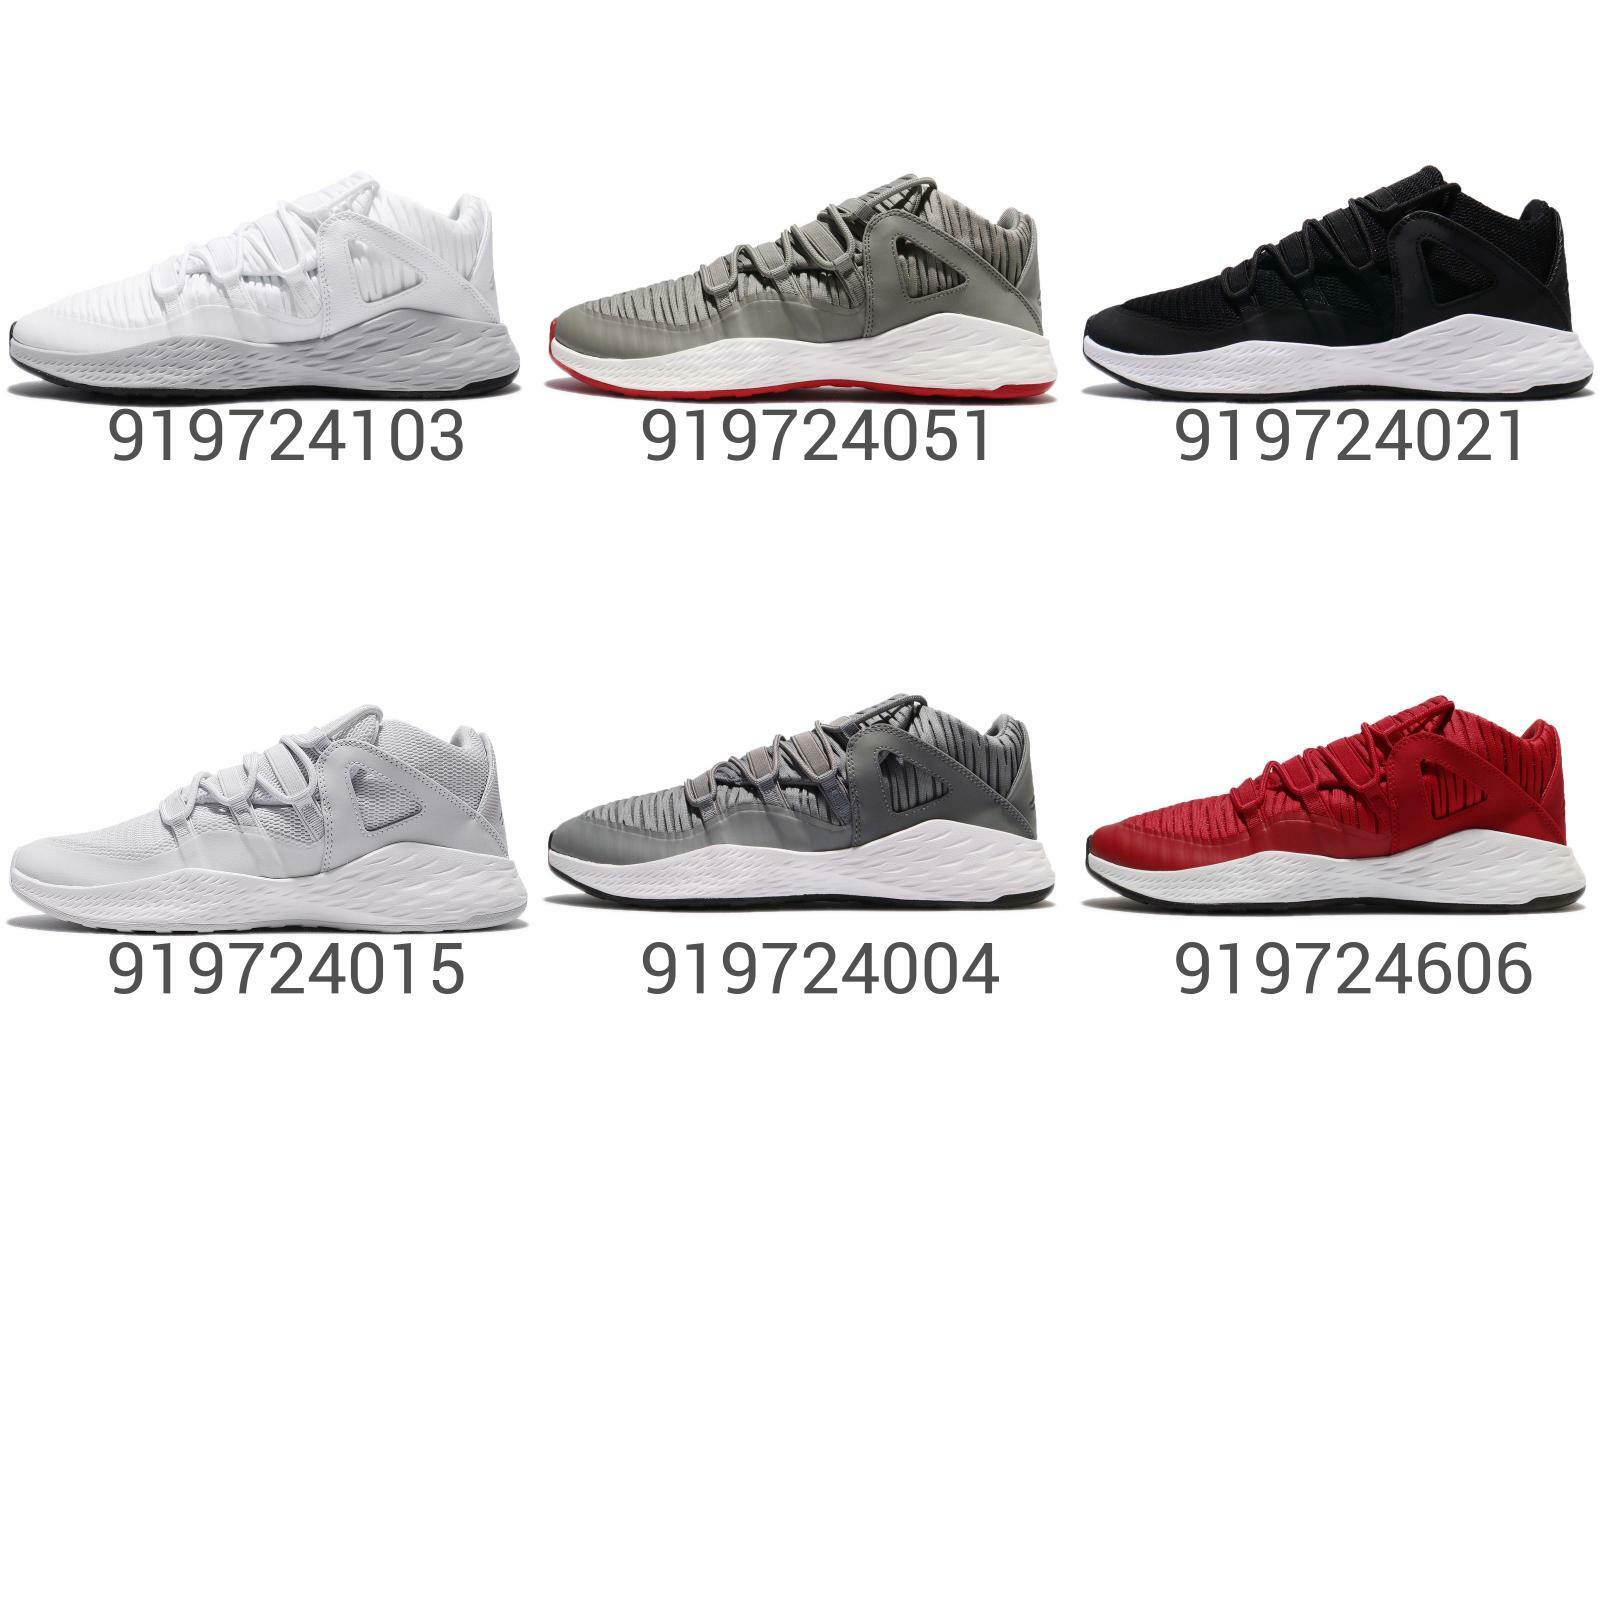 Nike Jordan Formula 23 Low Men Running Lifestyle Casual shoes Sneakers Pick 1